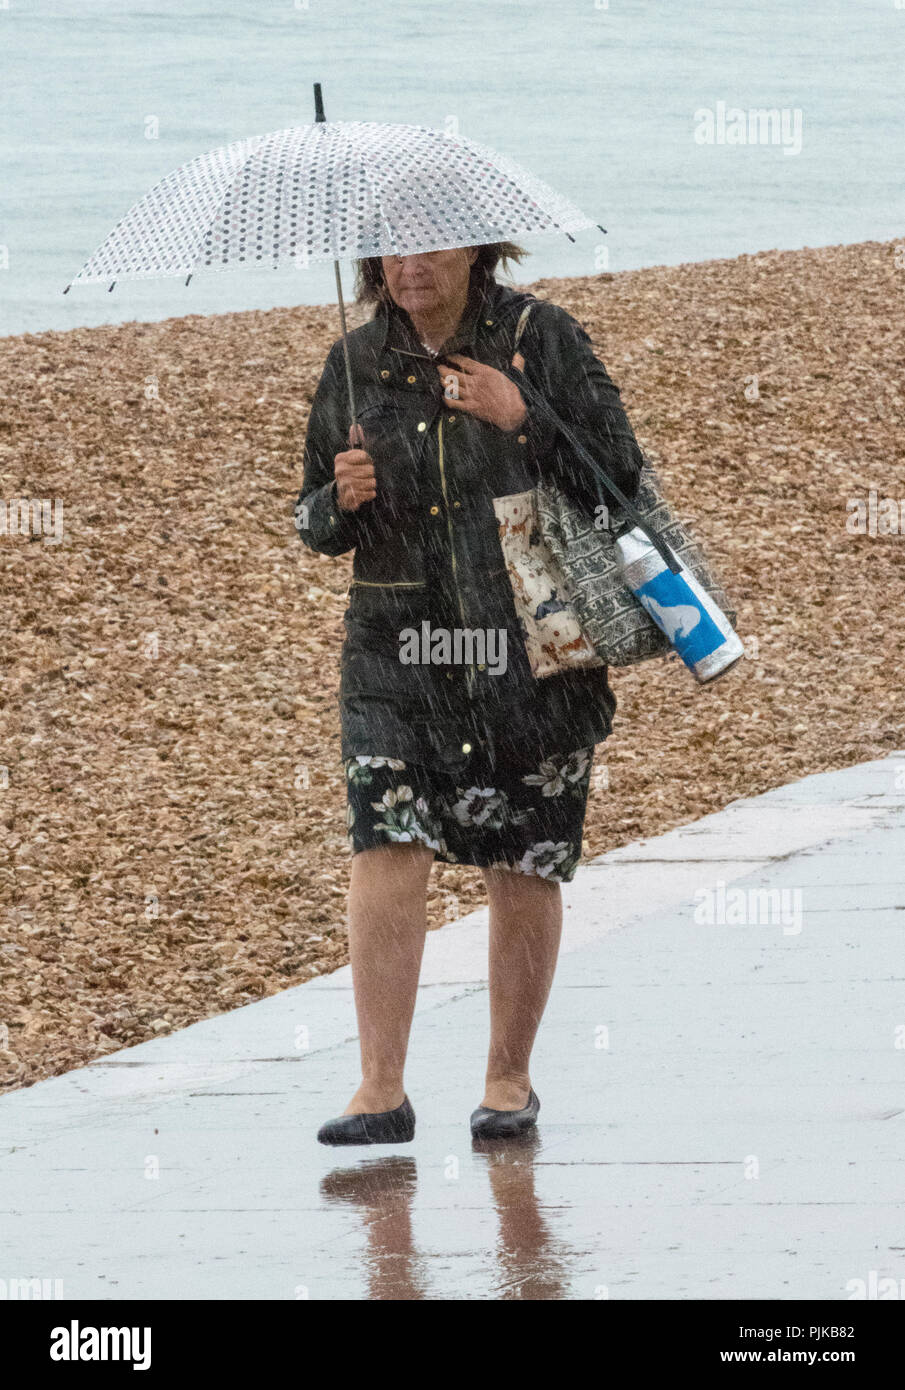 older or middle aged woman walking along a seaside pathway in the rain with an umbrella to protect against the wet weather and downpour. - Stock Image